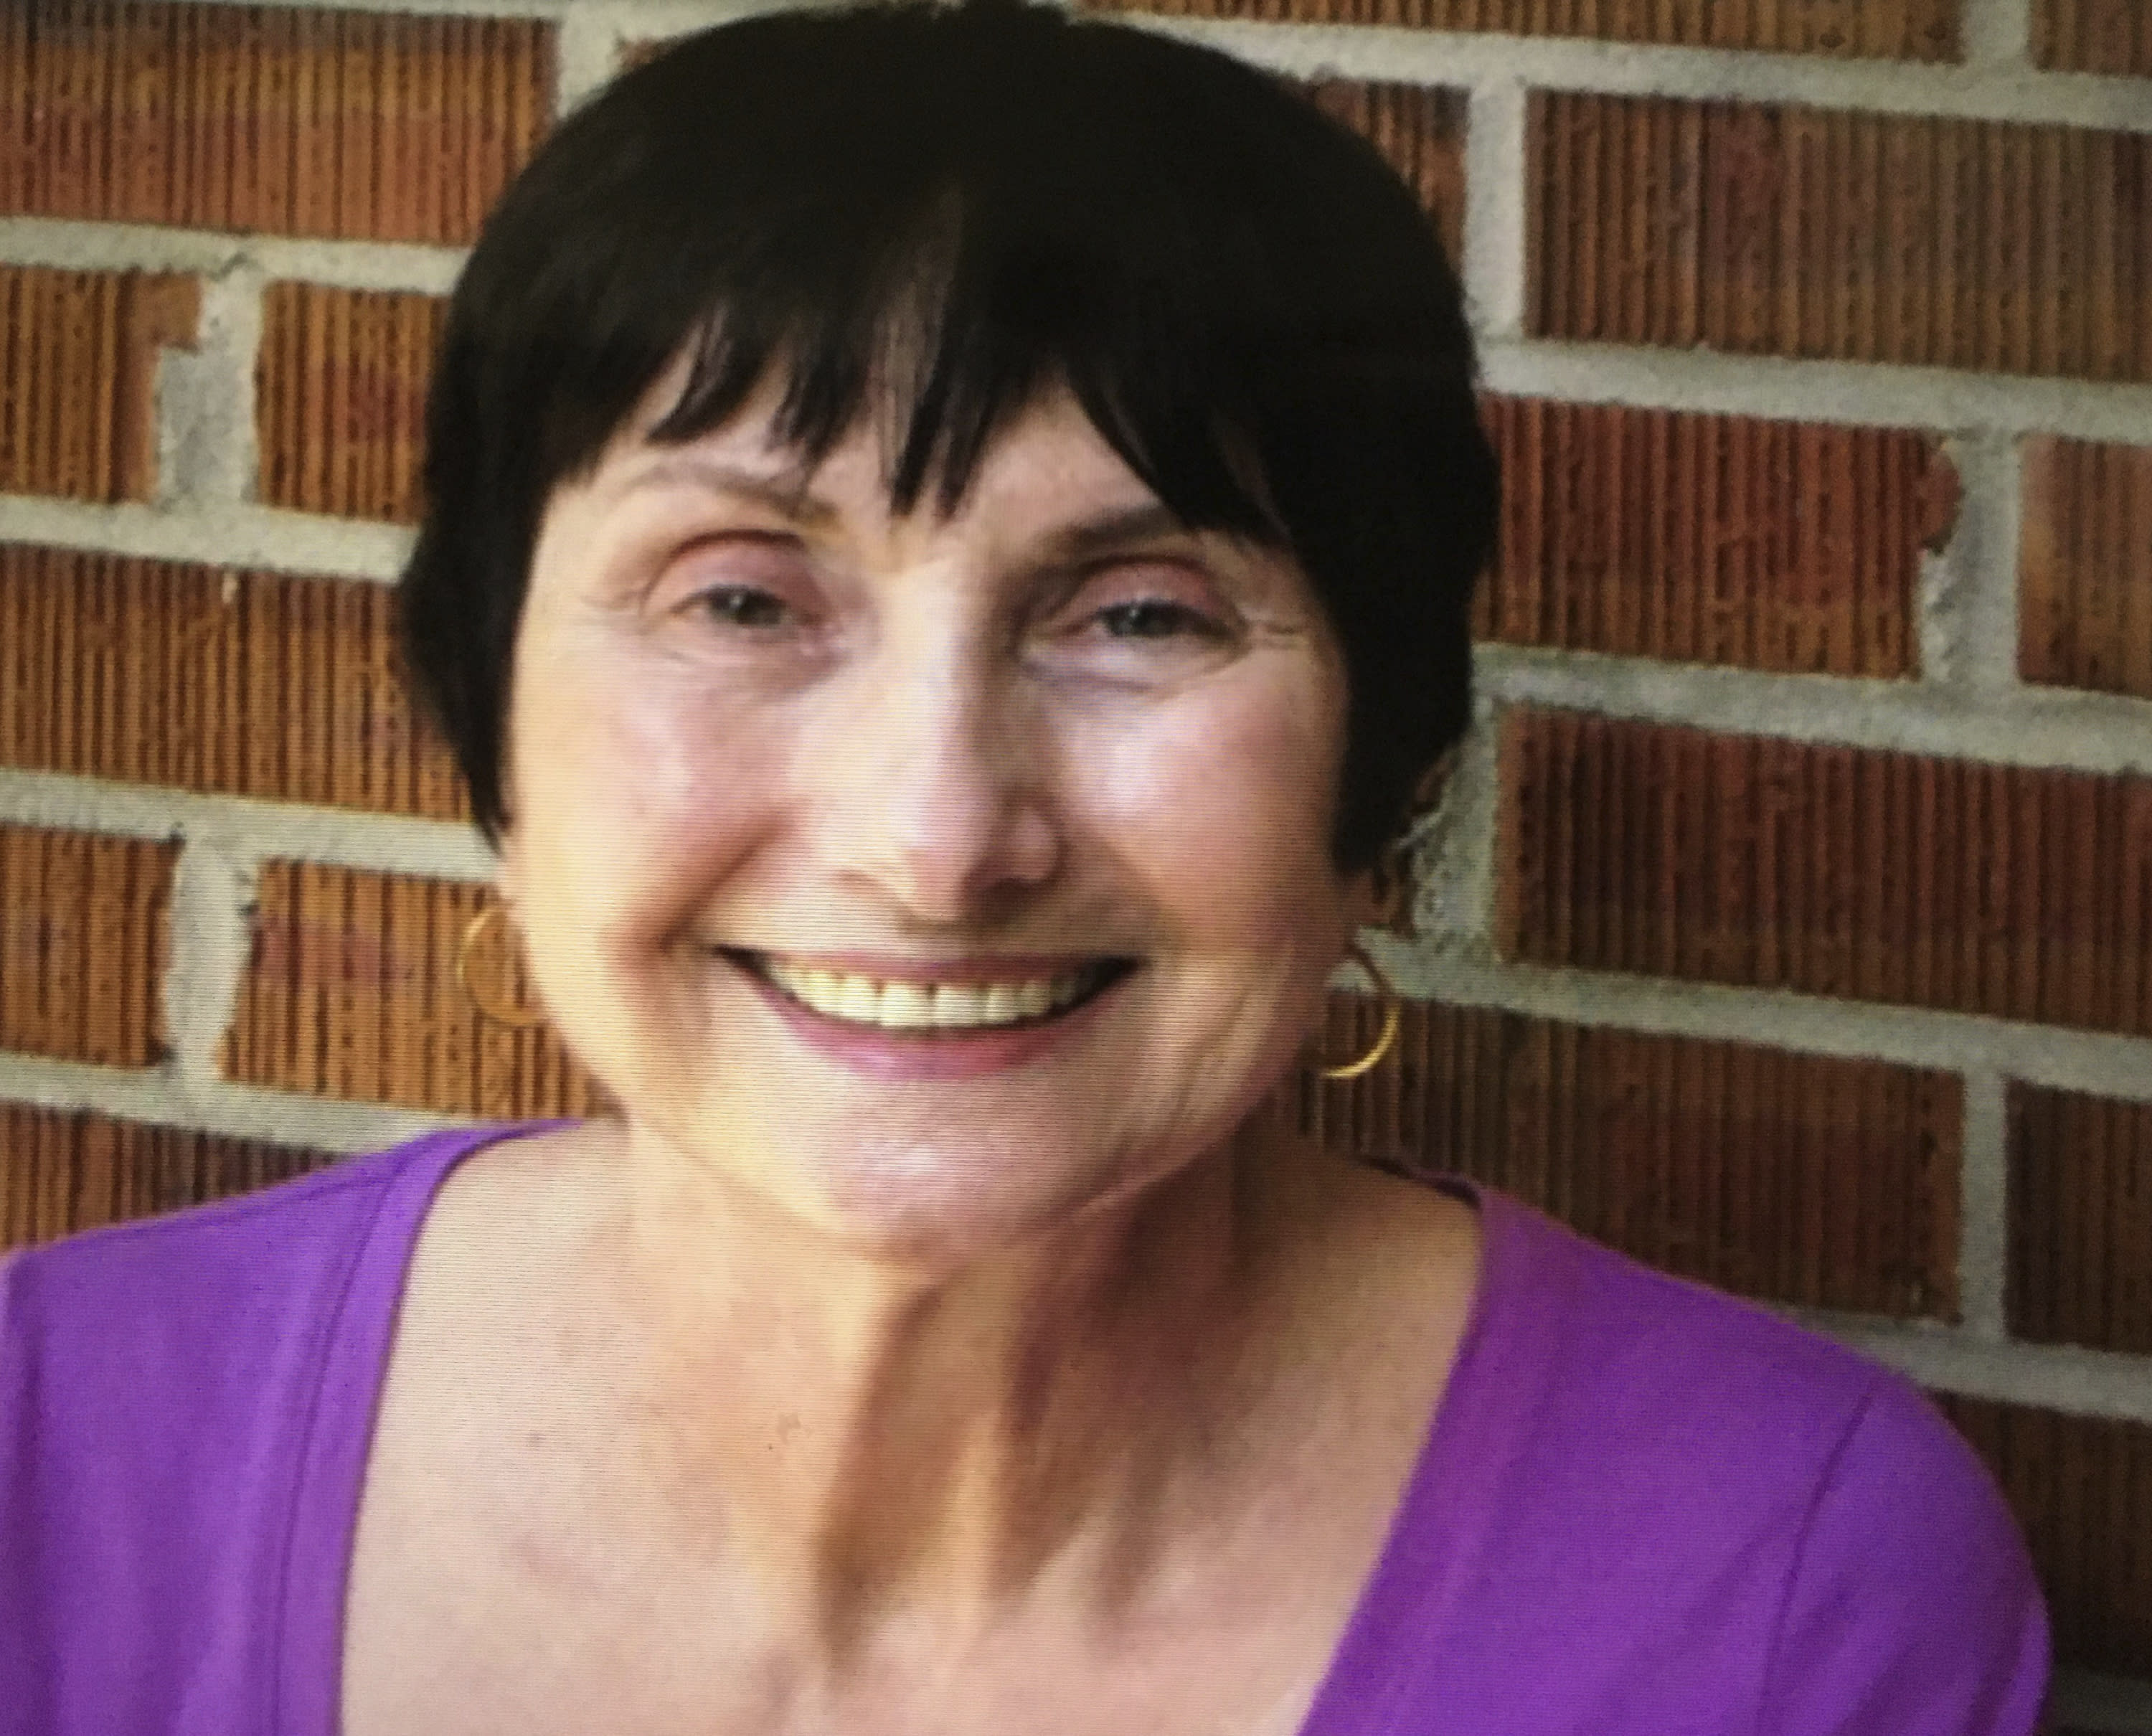 Joanna Cole, author of 'The Magic School Bus', has passed away